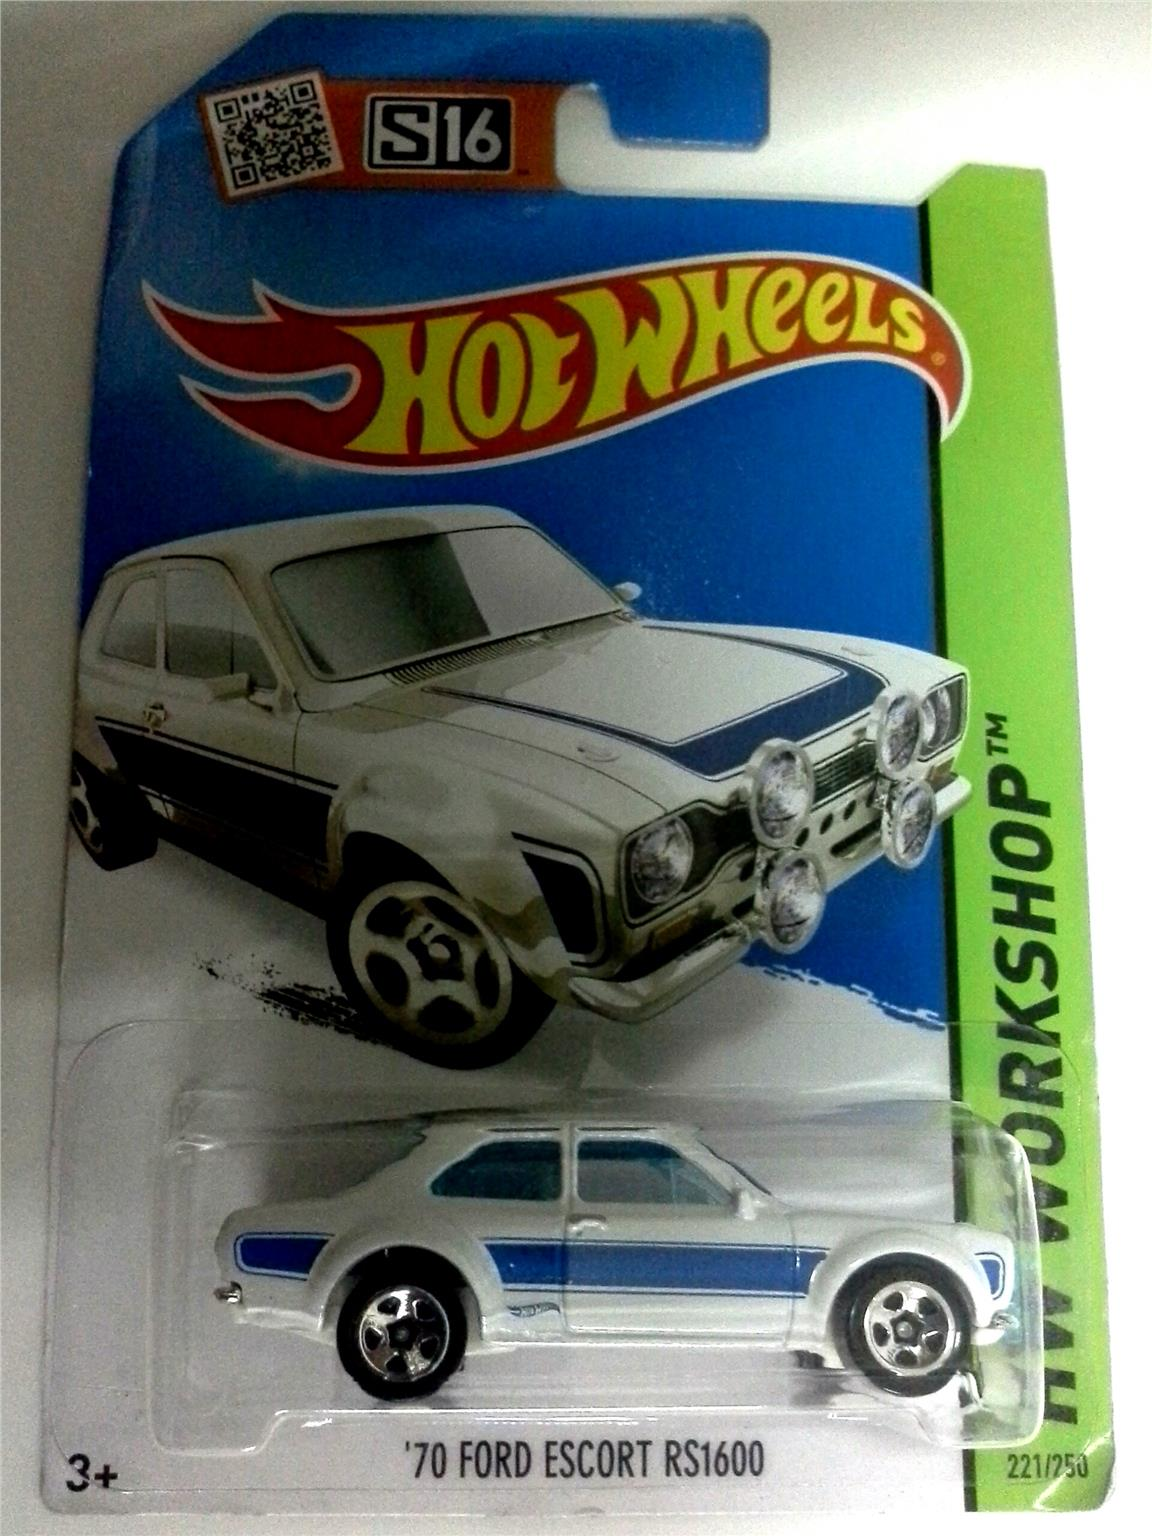 2016 Hot Wheels 70 FORD ESCORT RS1600 WHITE